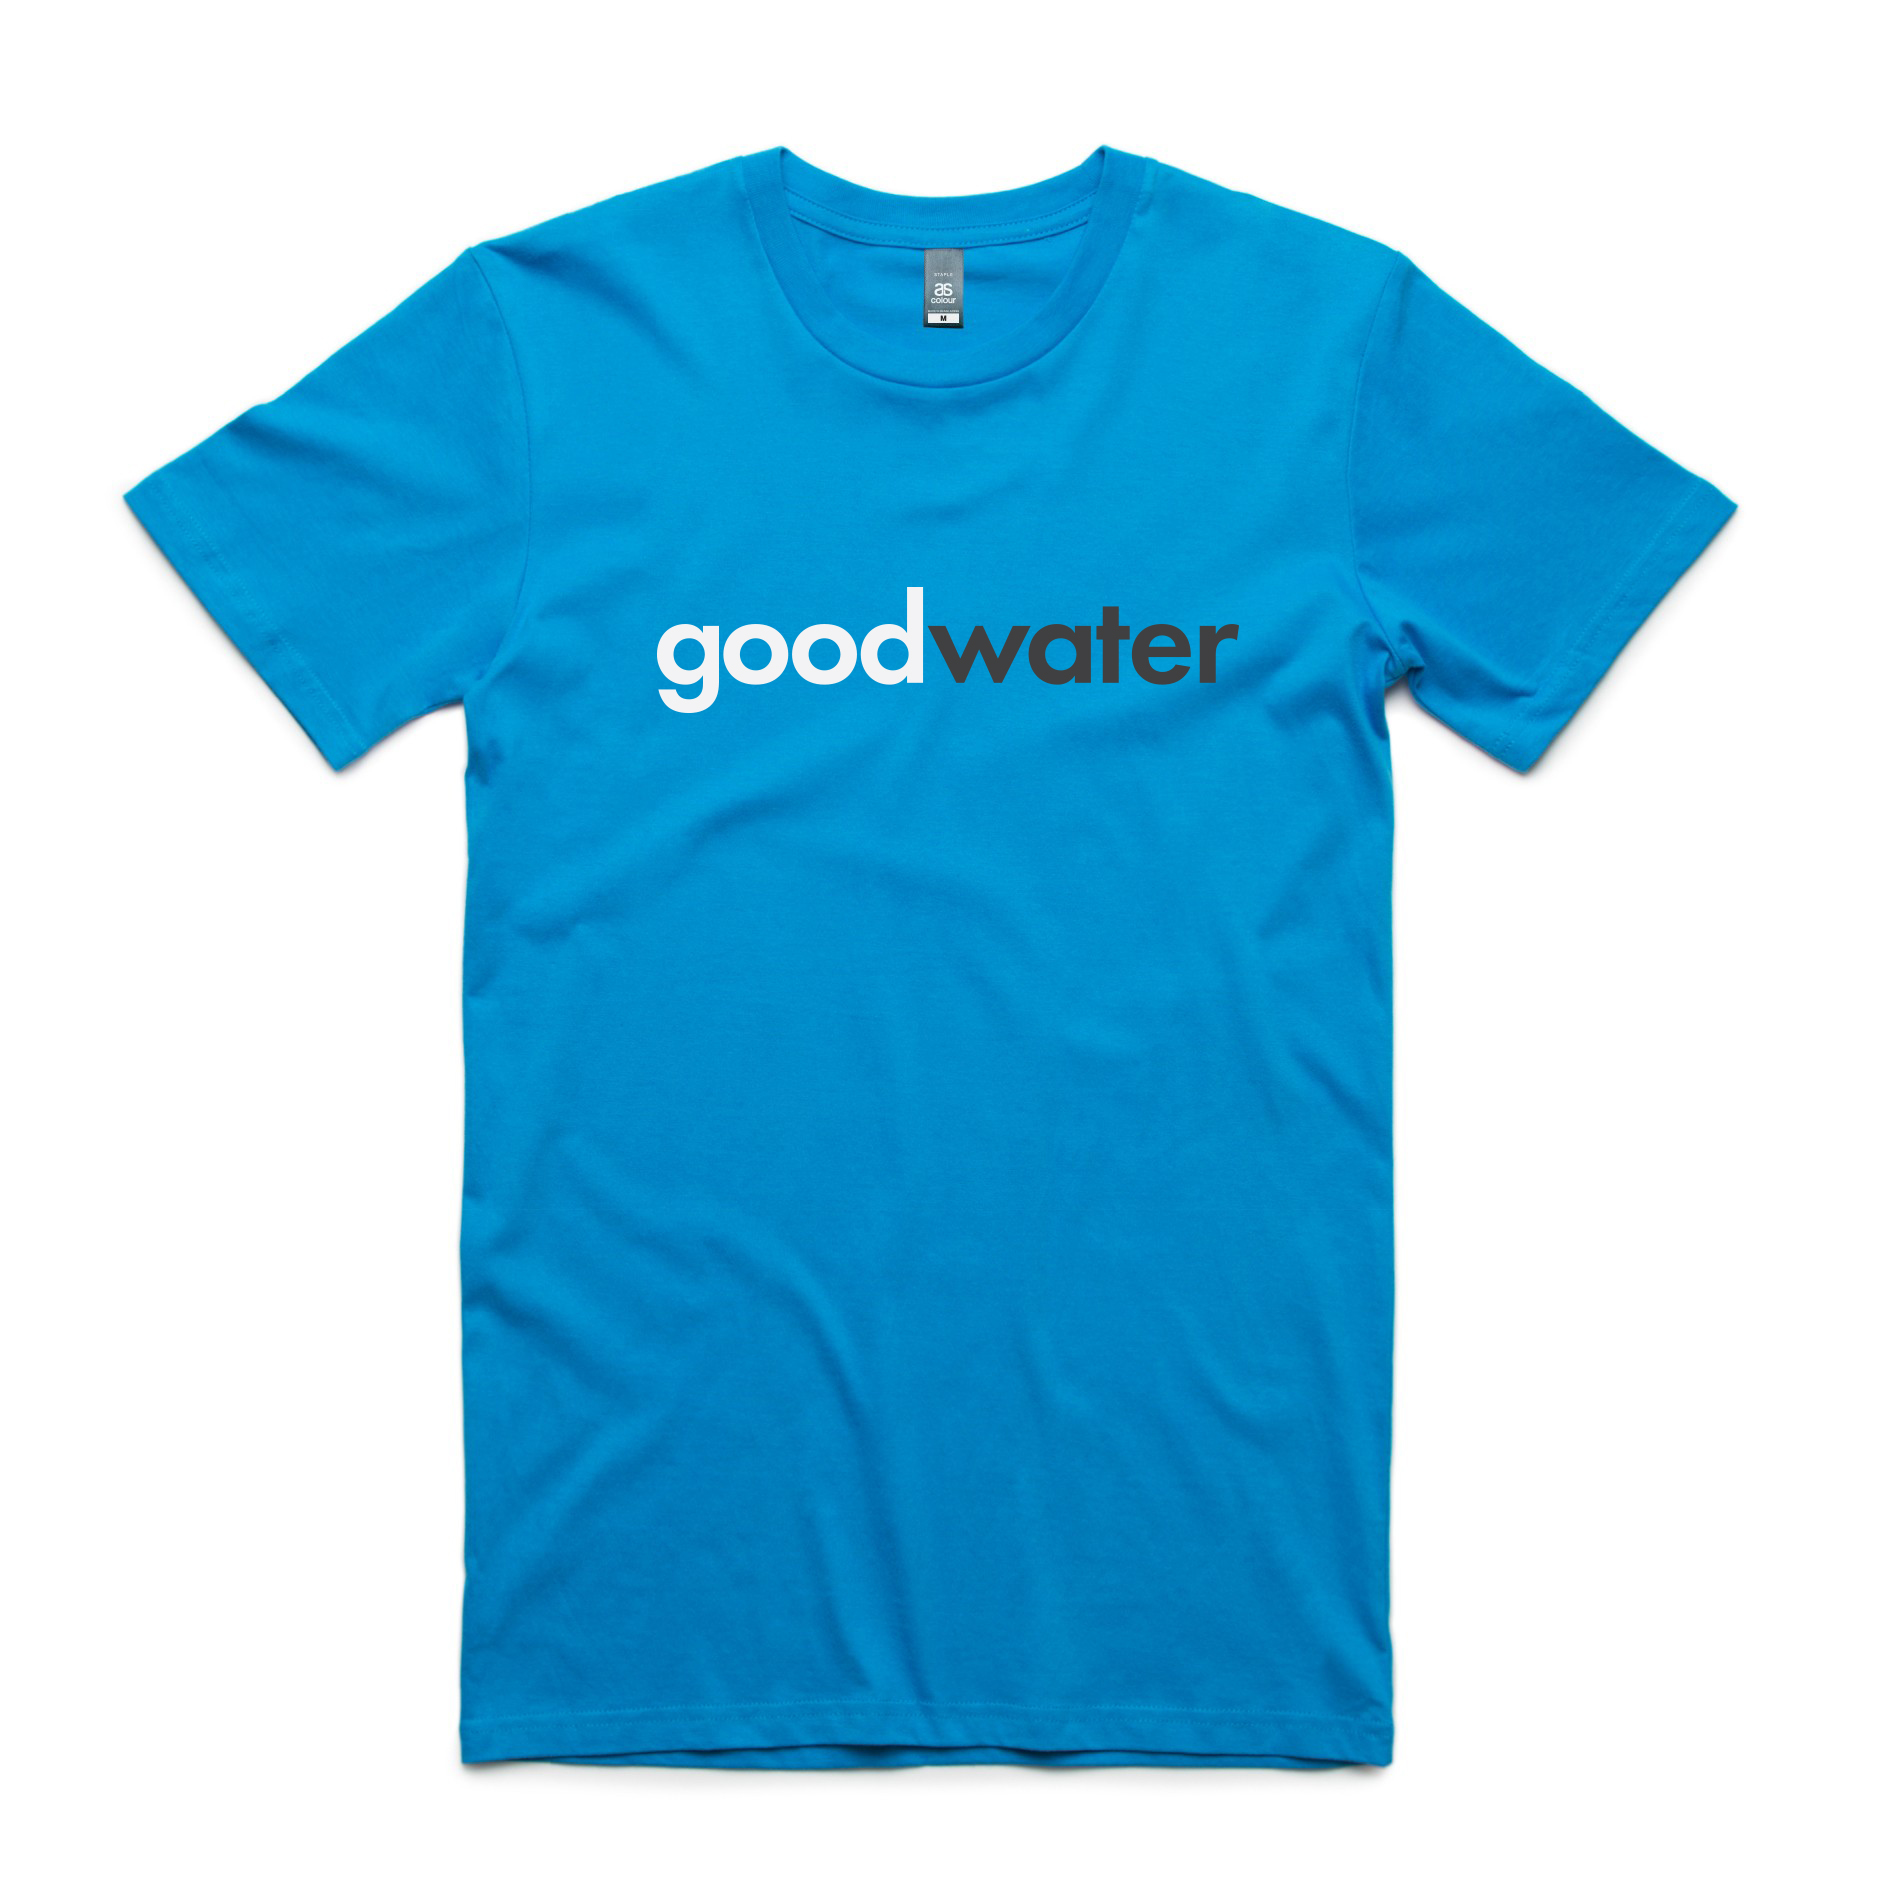 T shirt goodwater front.jpg